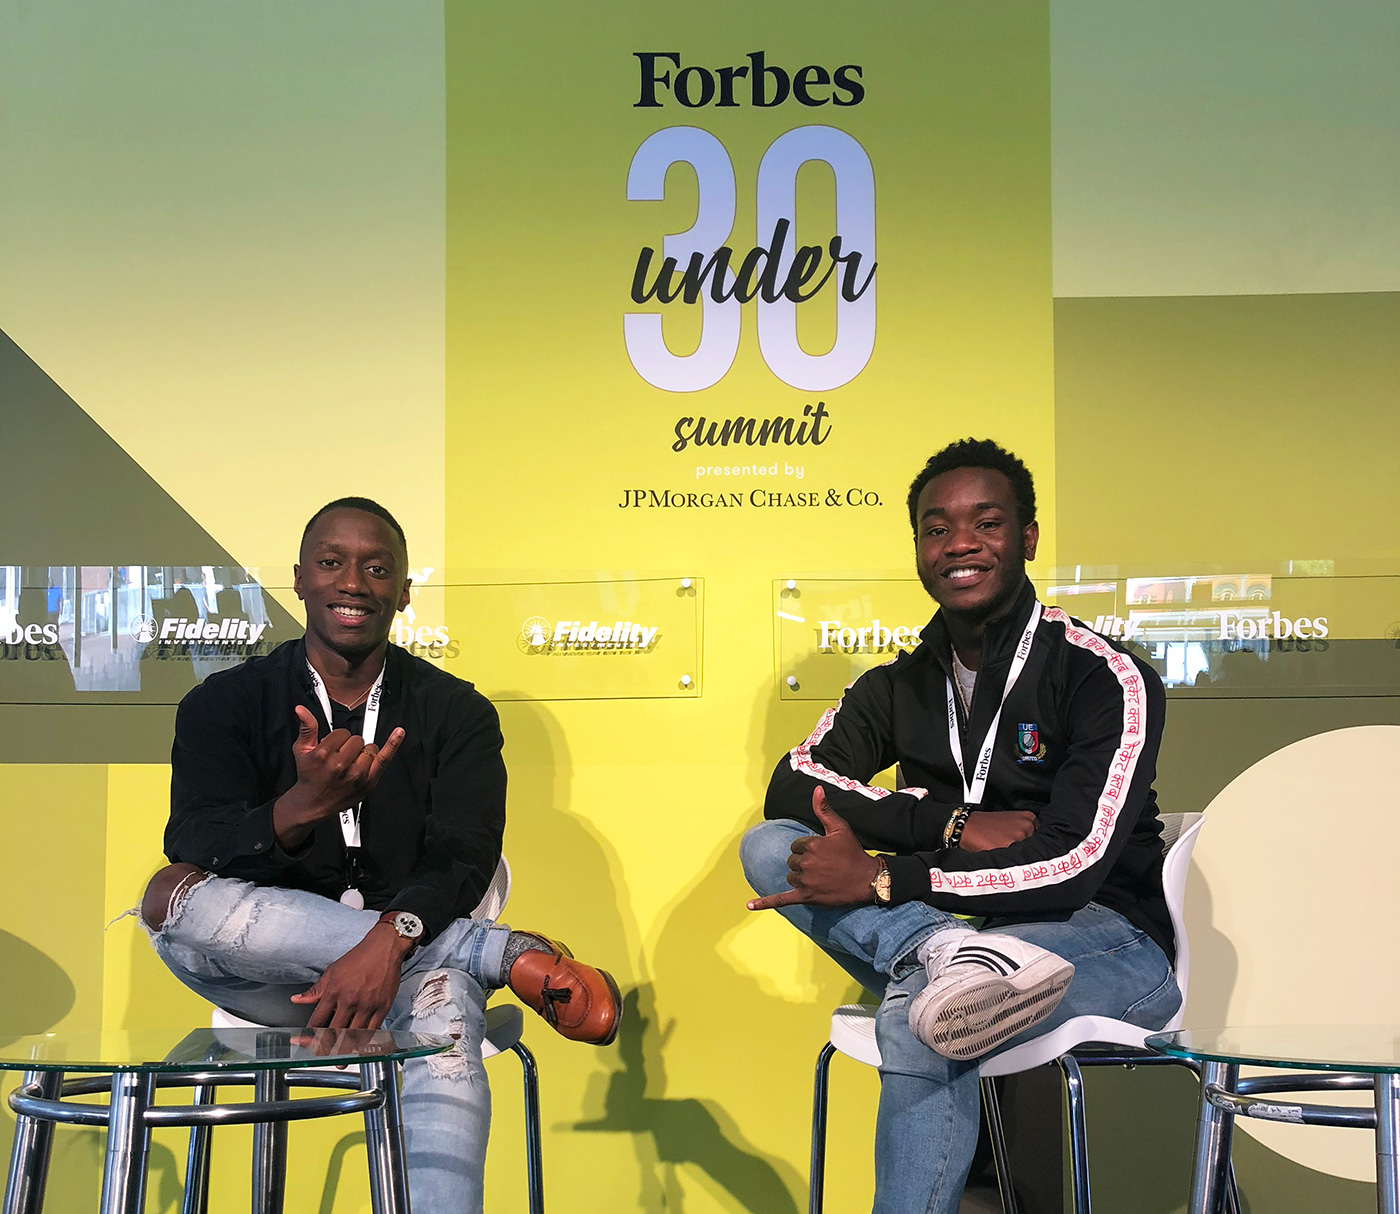 Taofik posing with a friend at Forbes' 30 Under 30 Summit